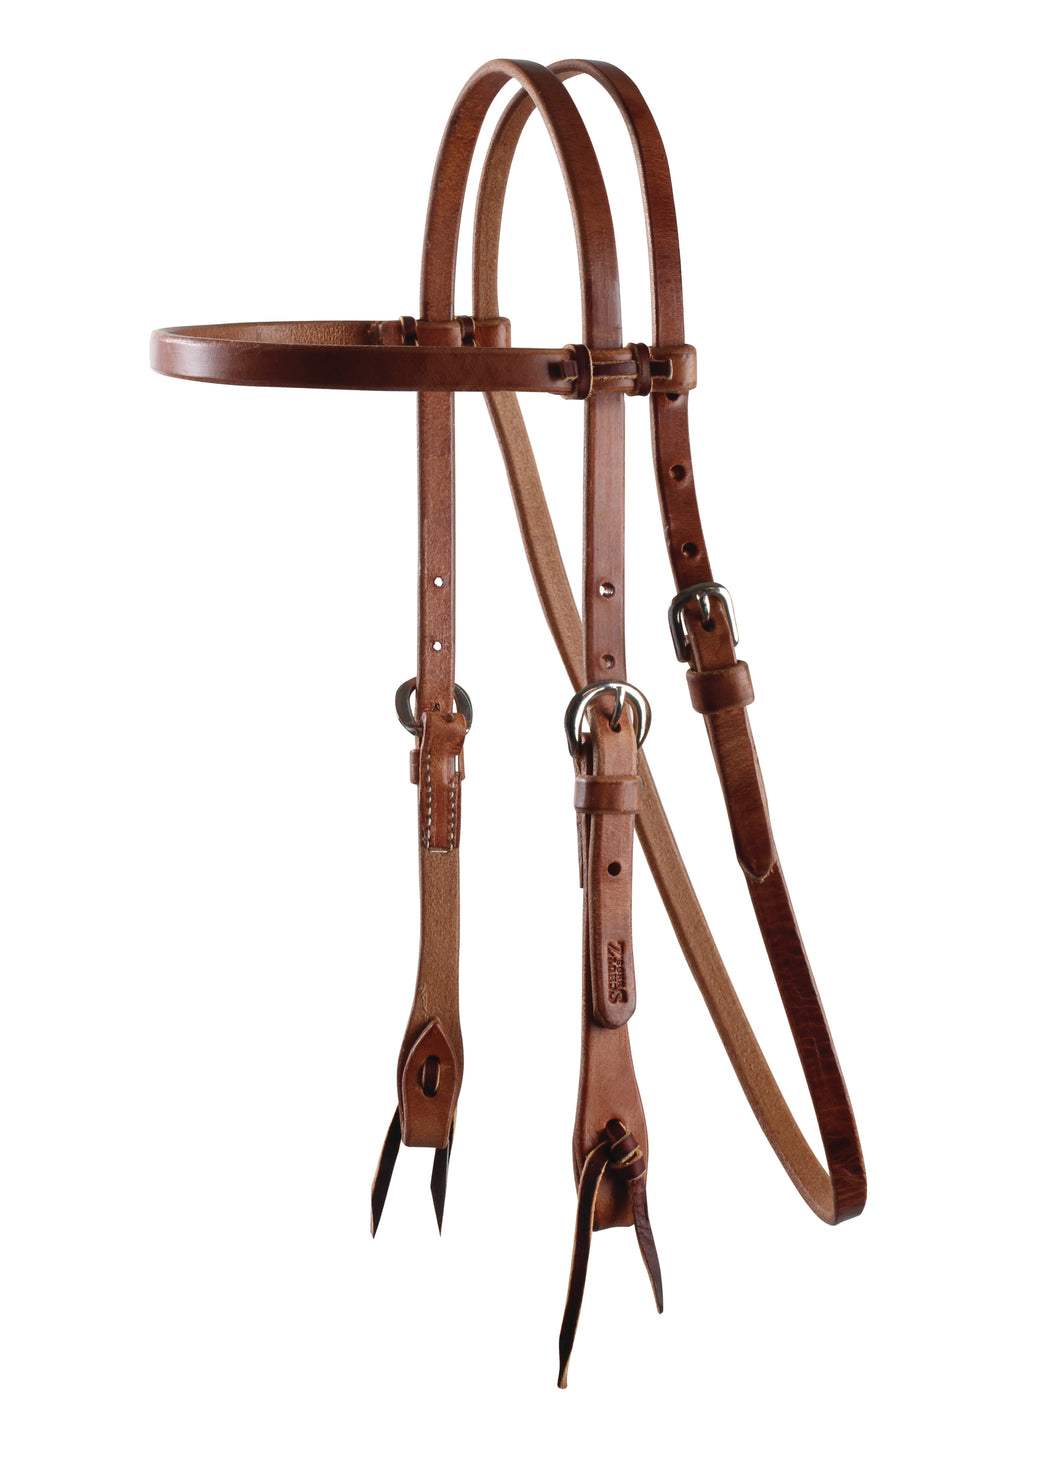 Professional's Choice Browband Headstall - Tie Ends